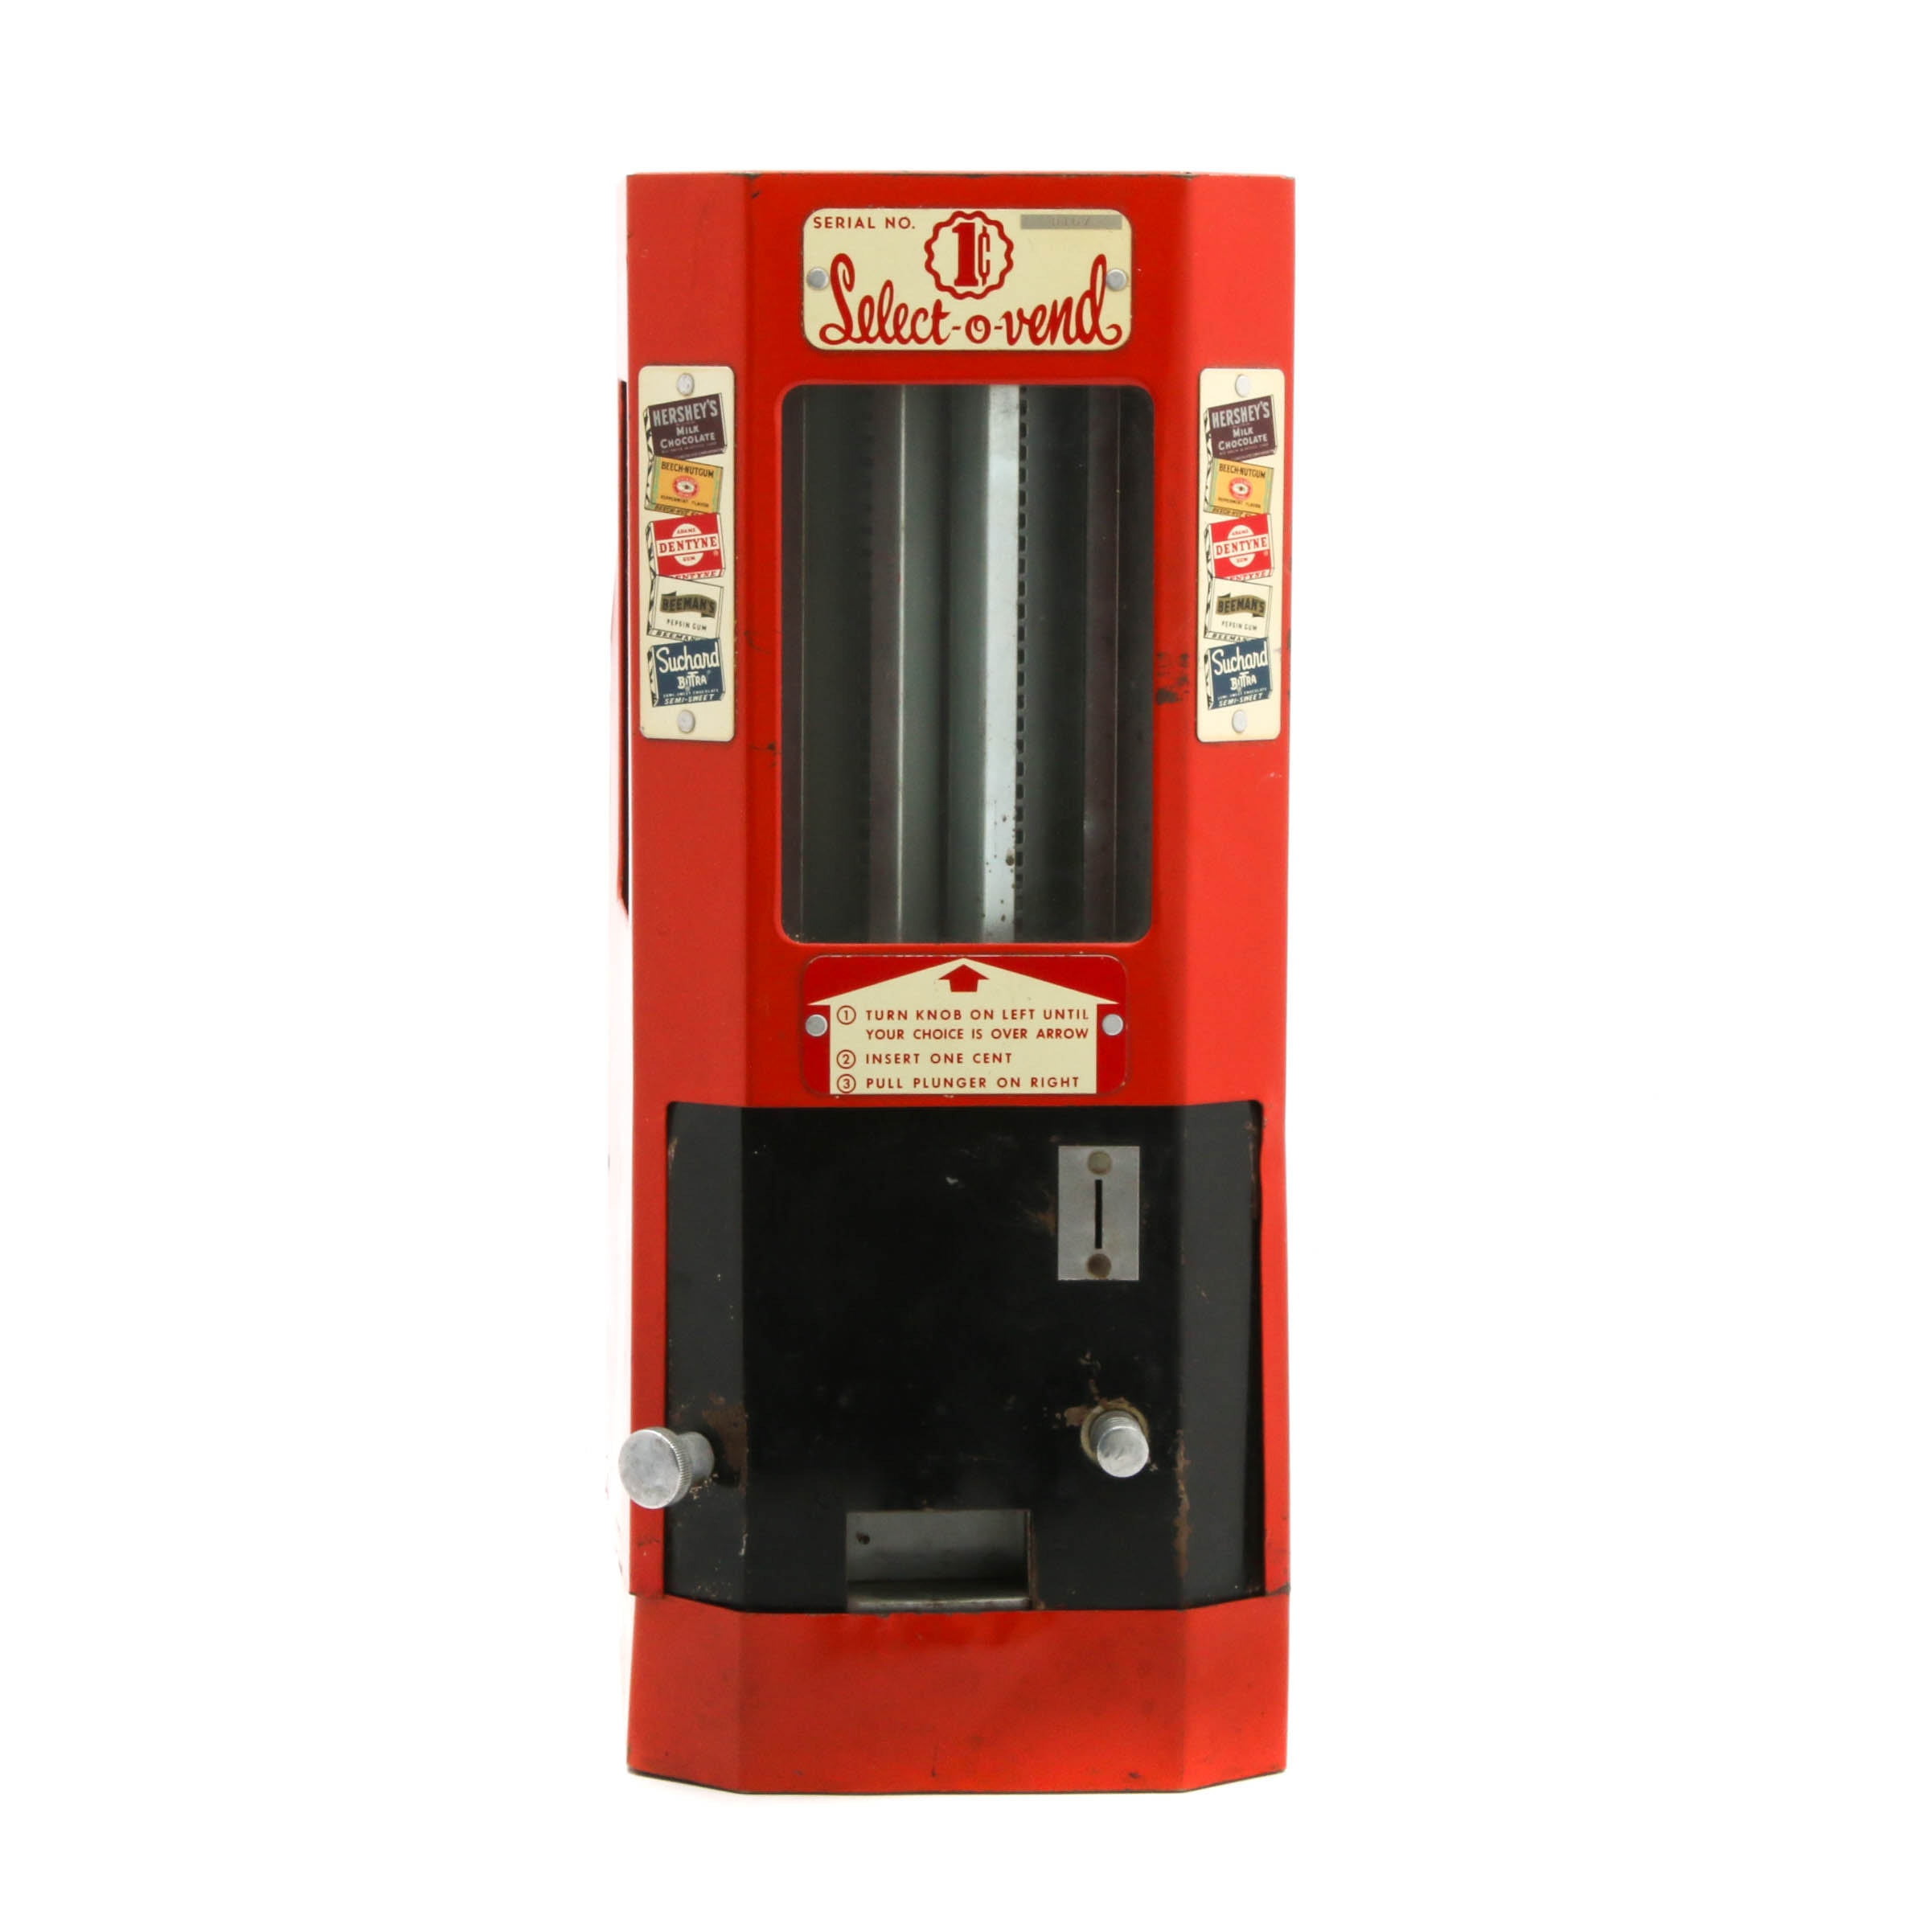 Select-O-Vend 1-Cent Candy Machine, Mid-Century